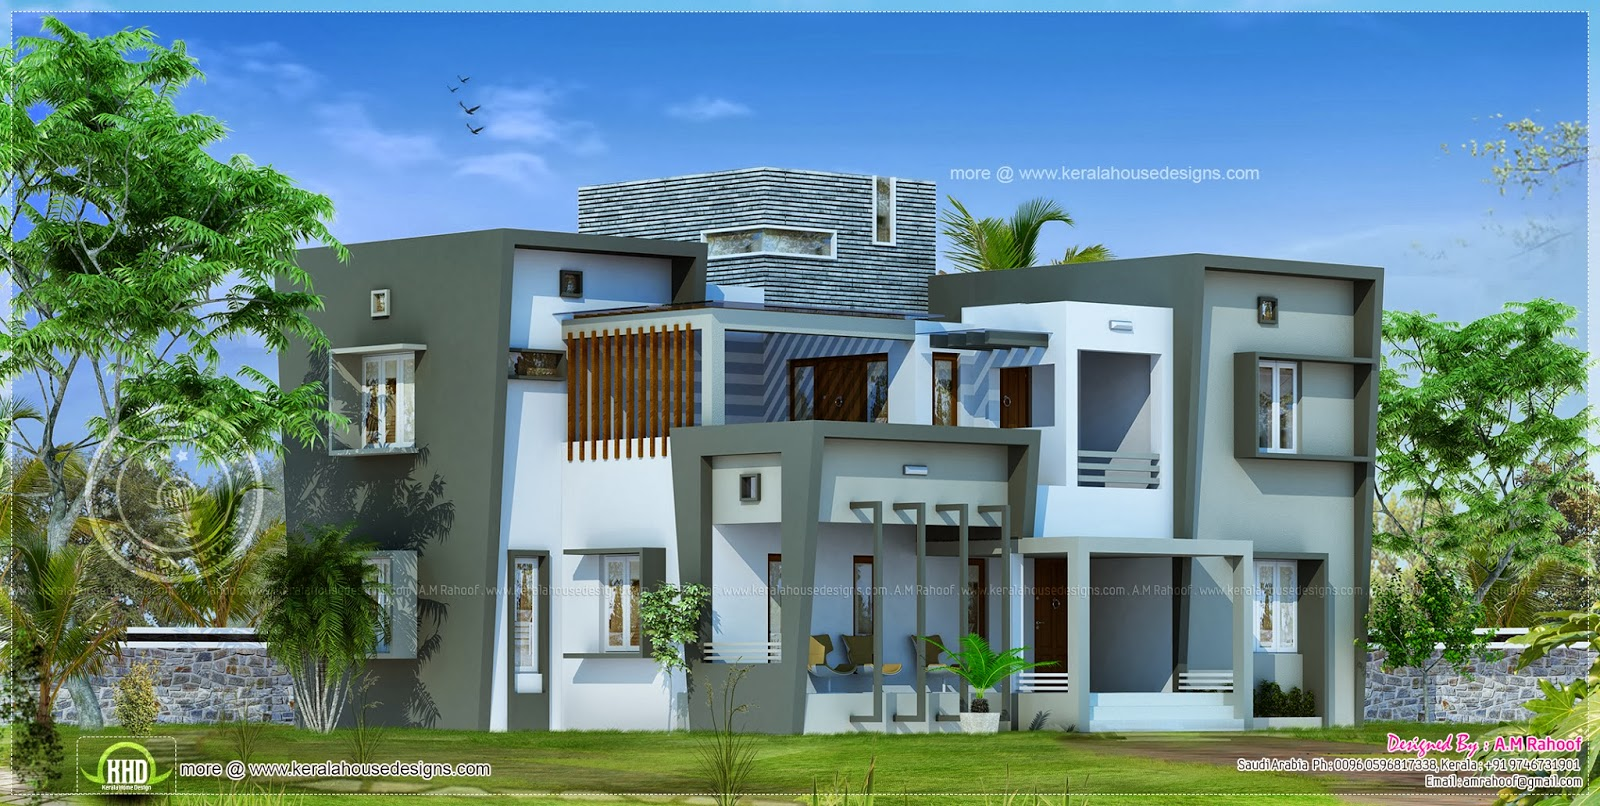 Modern house design in 2850 square feet home kerala plans for Innovative house plans designs